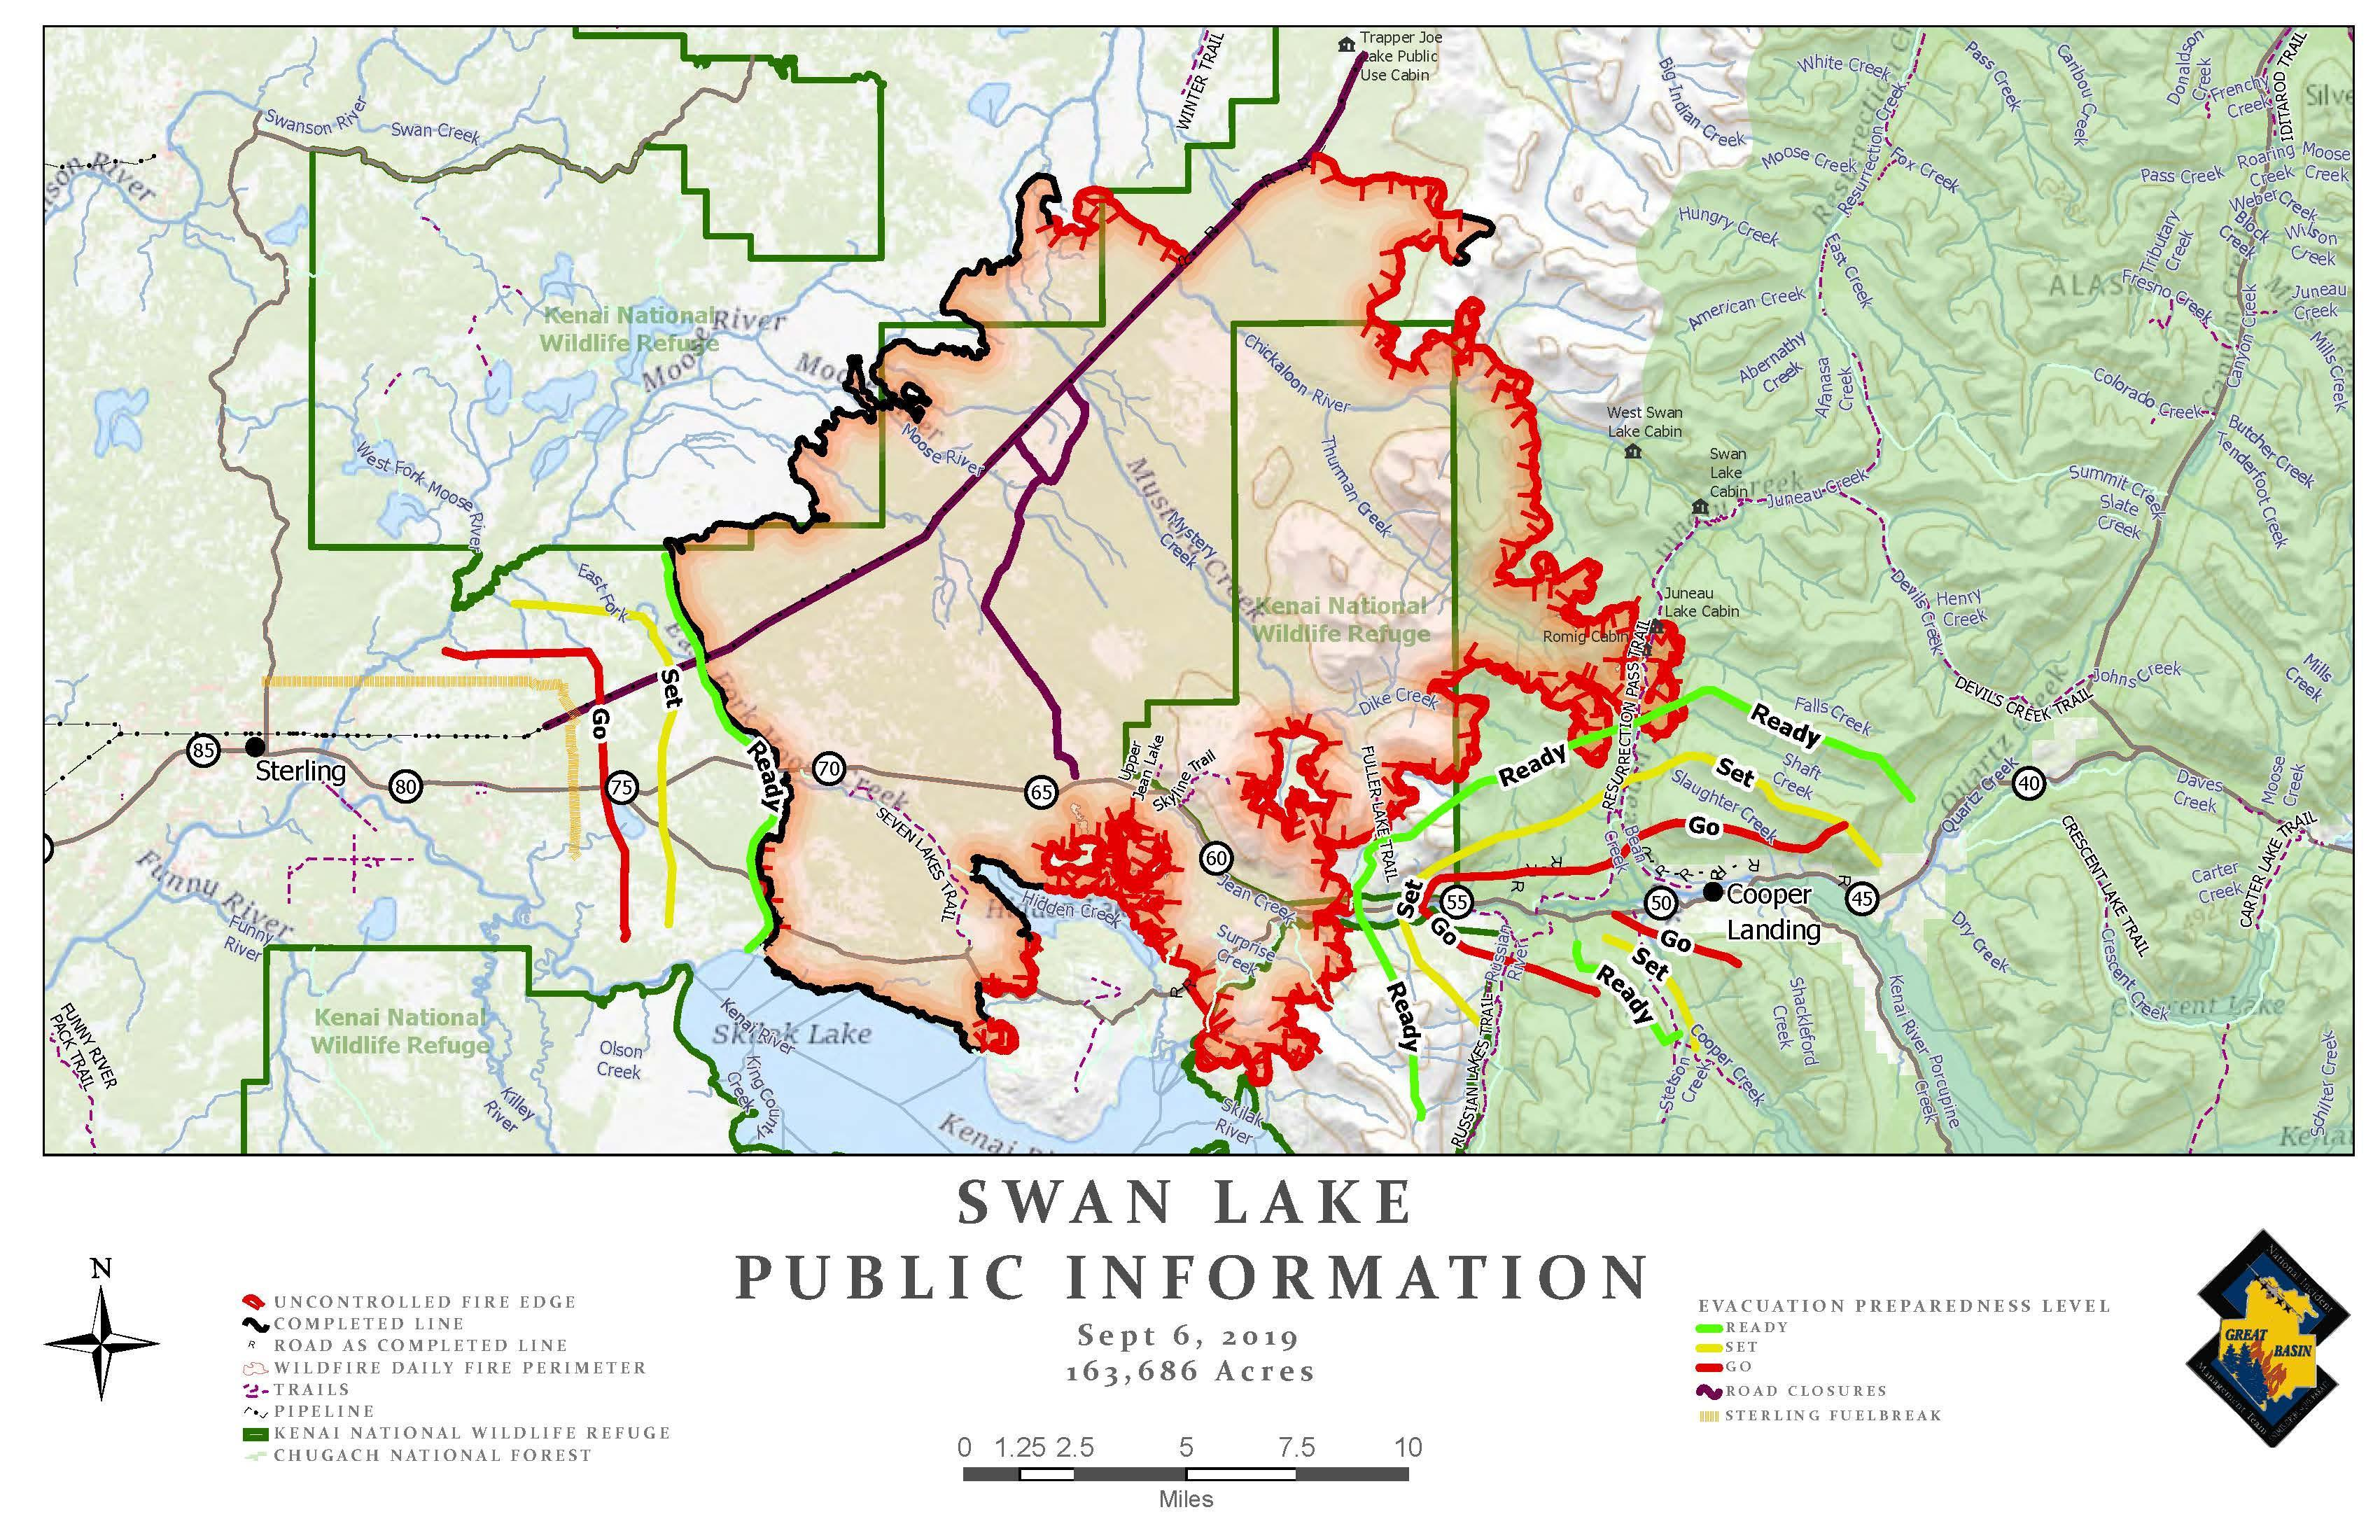 Swan Lake Public Information Map 9/6/19